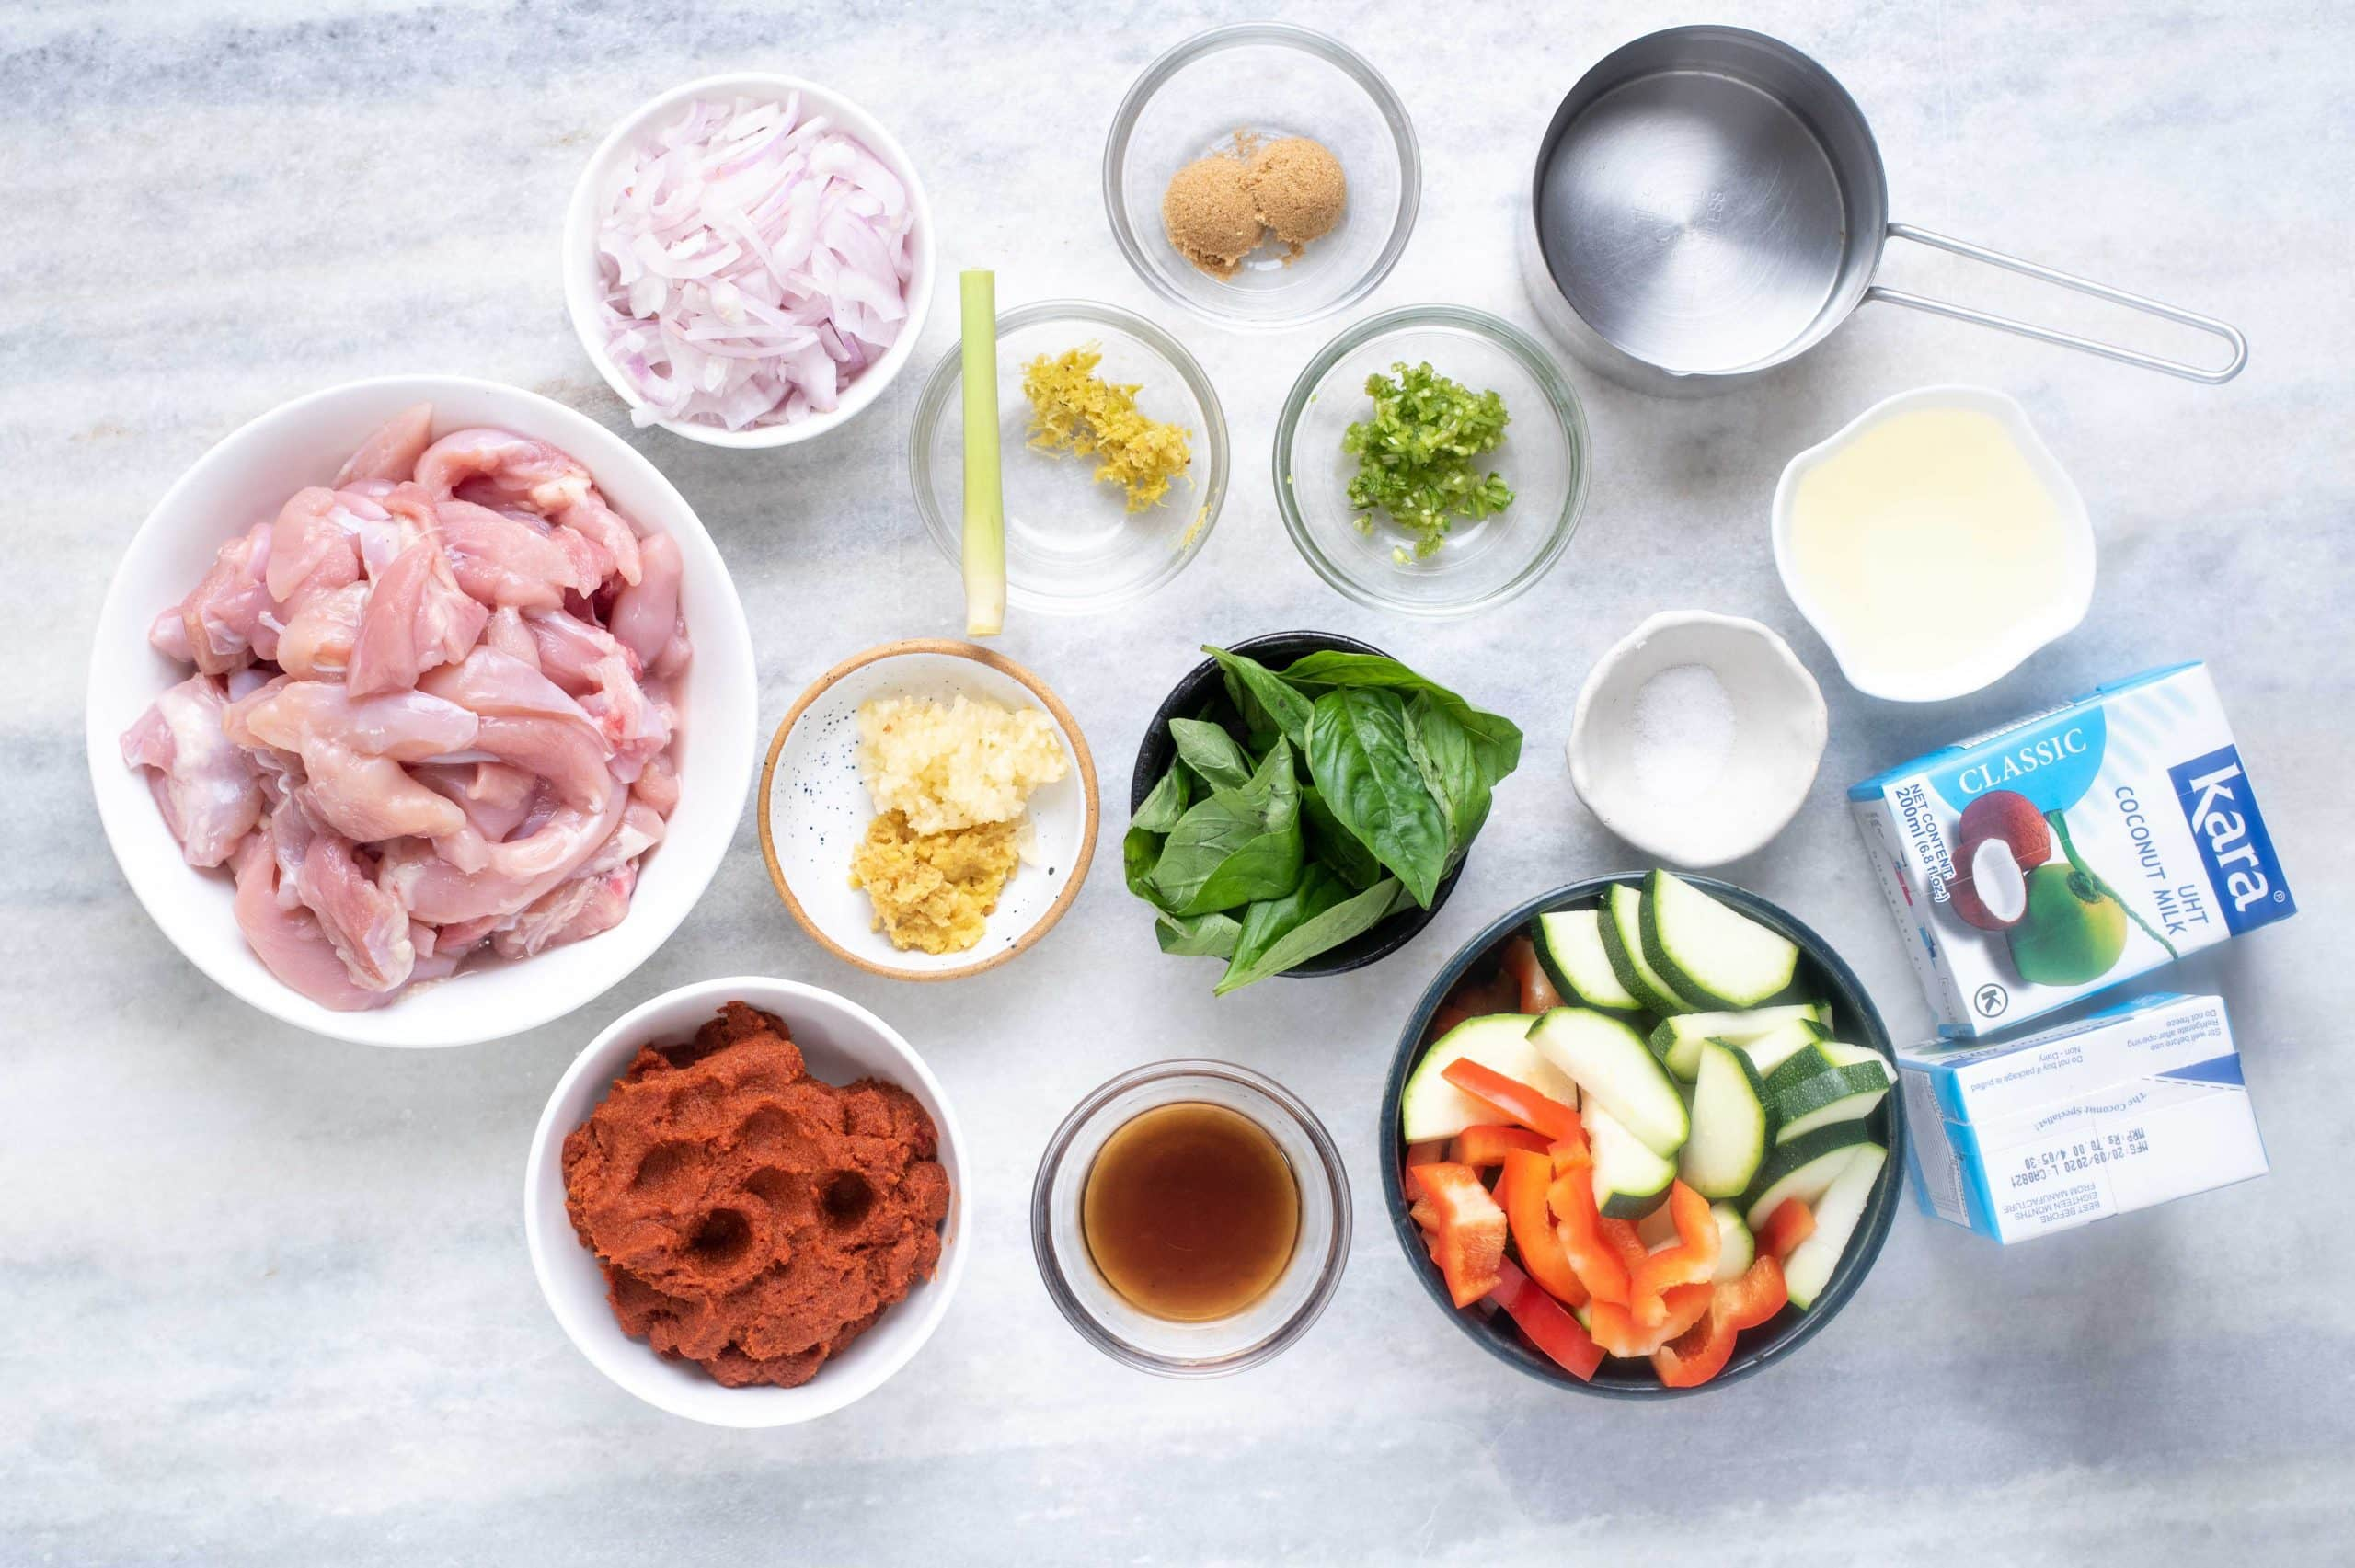 Ingredients for Thai Red Curry